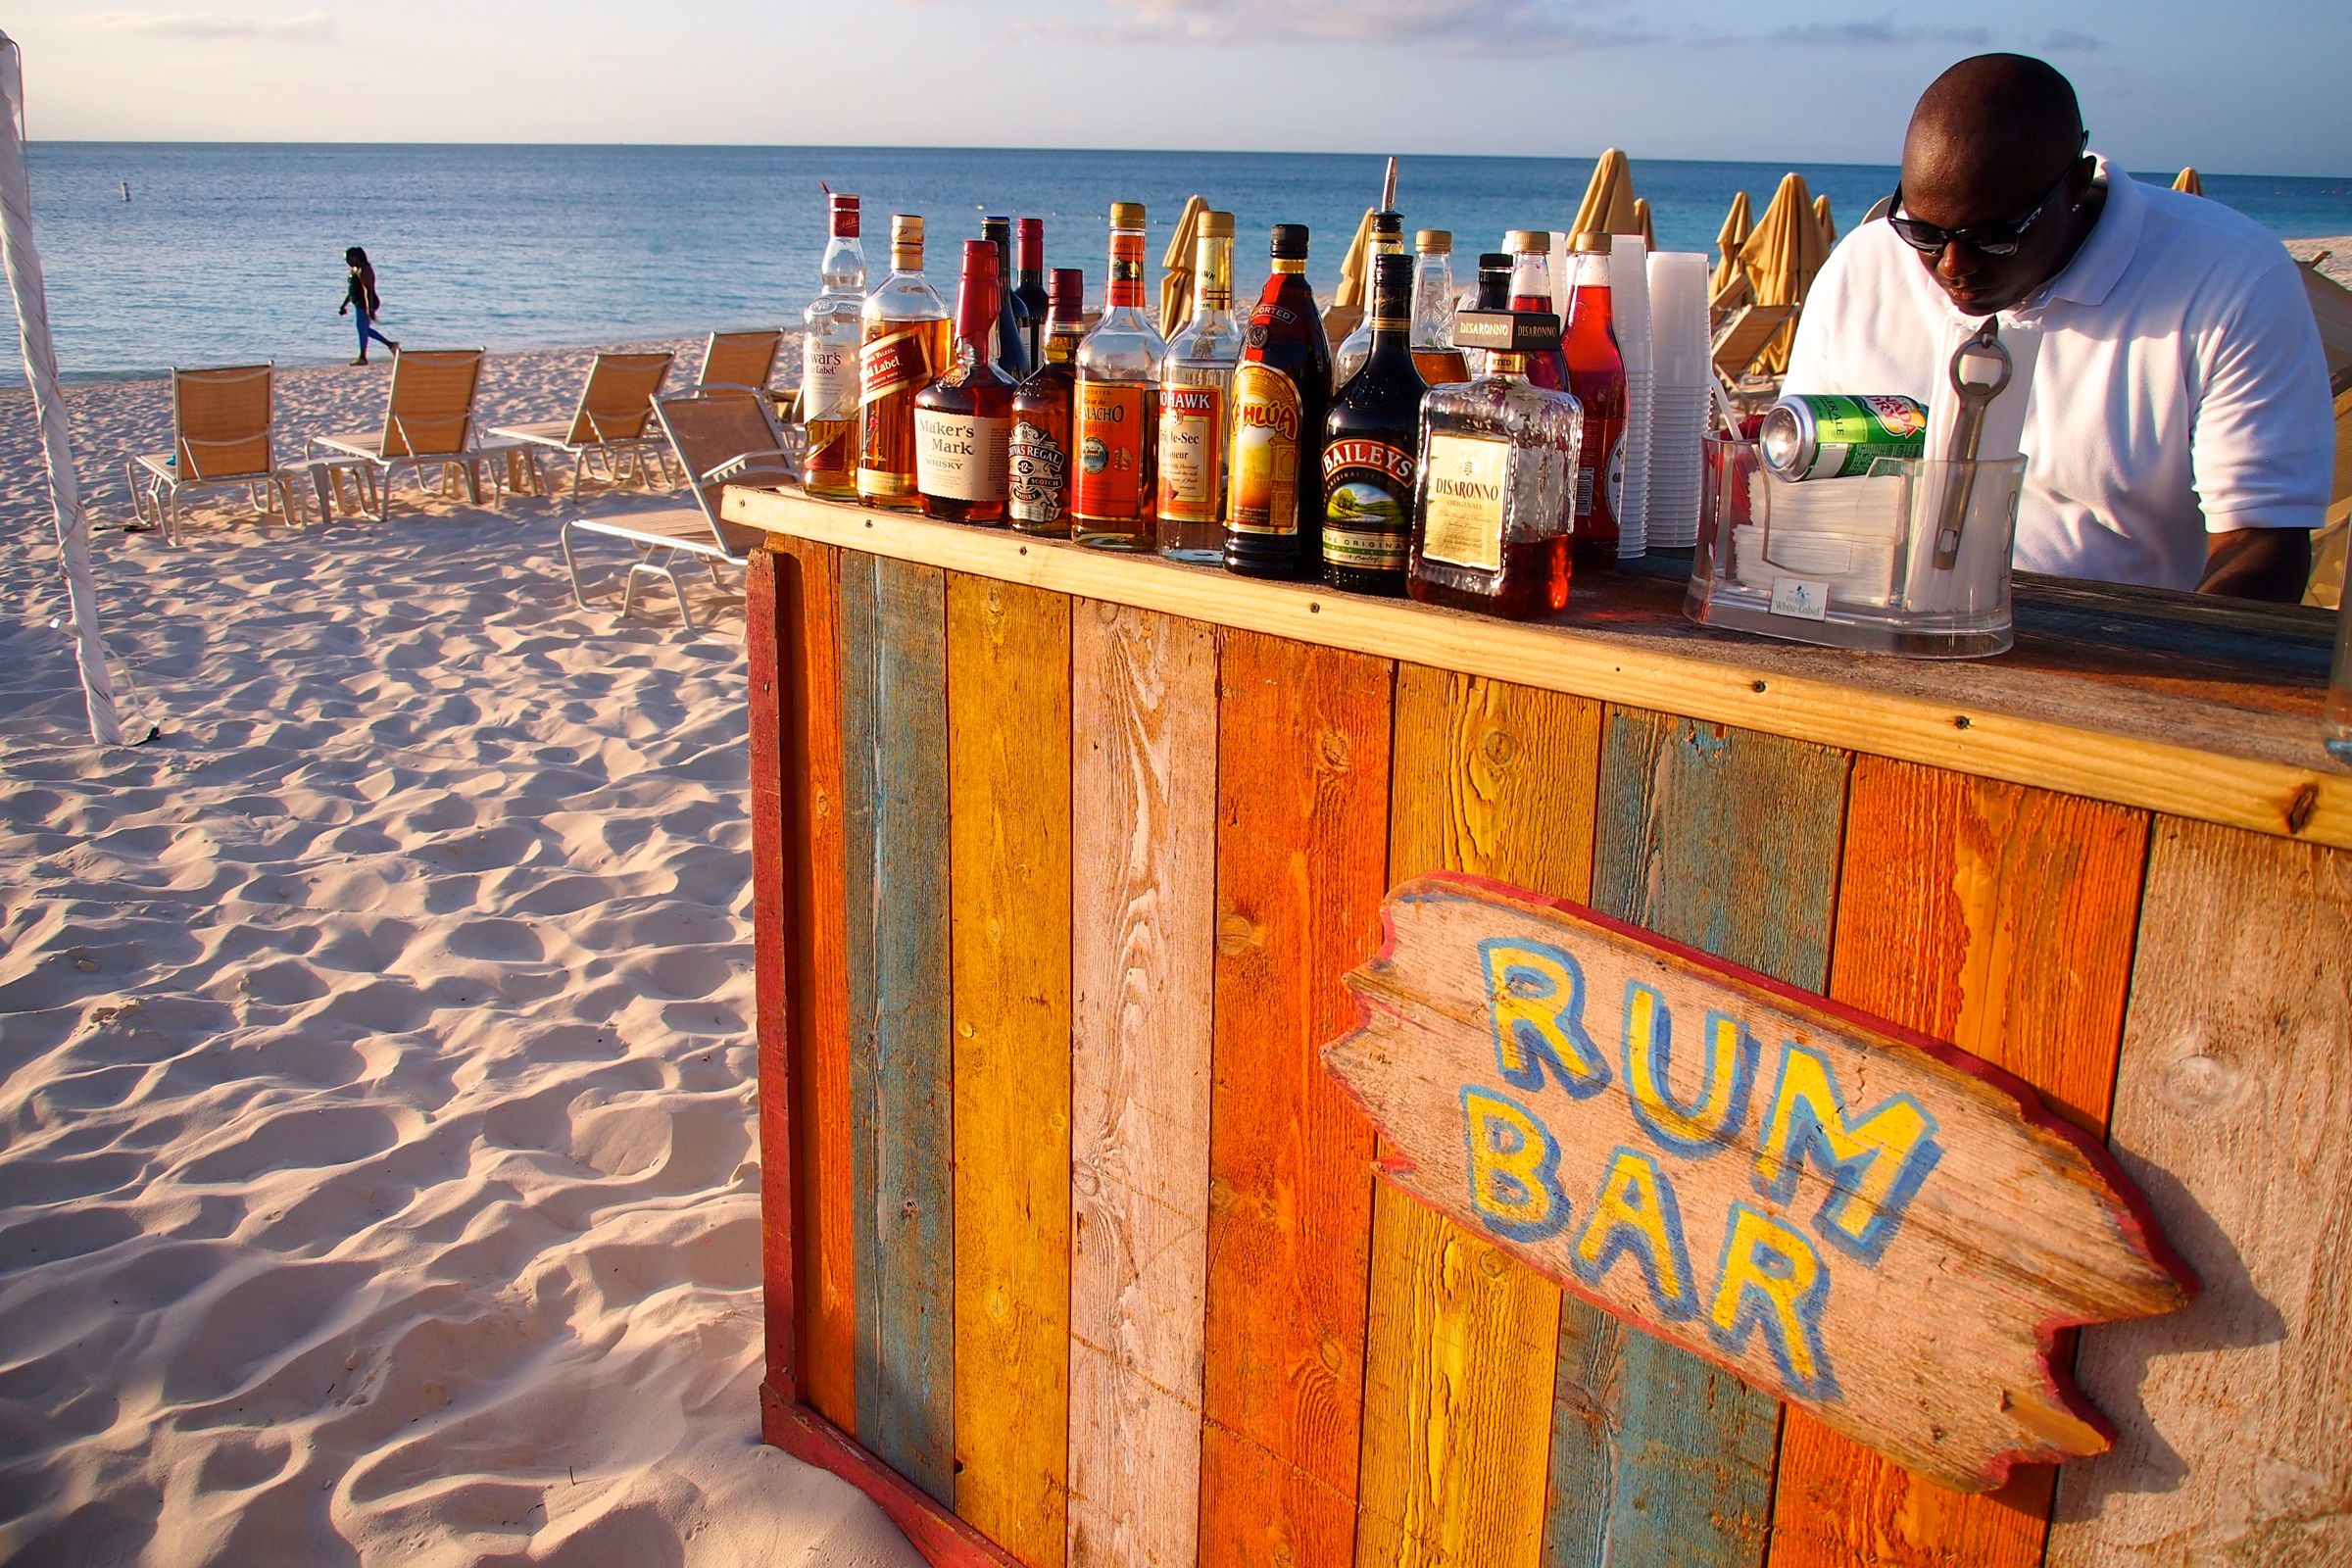 Caribbean Rum: A Rum Battle Is Brewing In New York